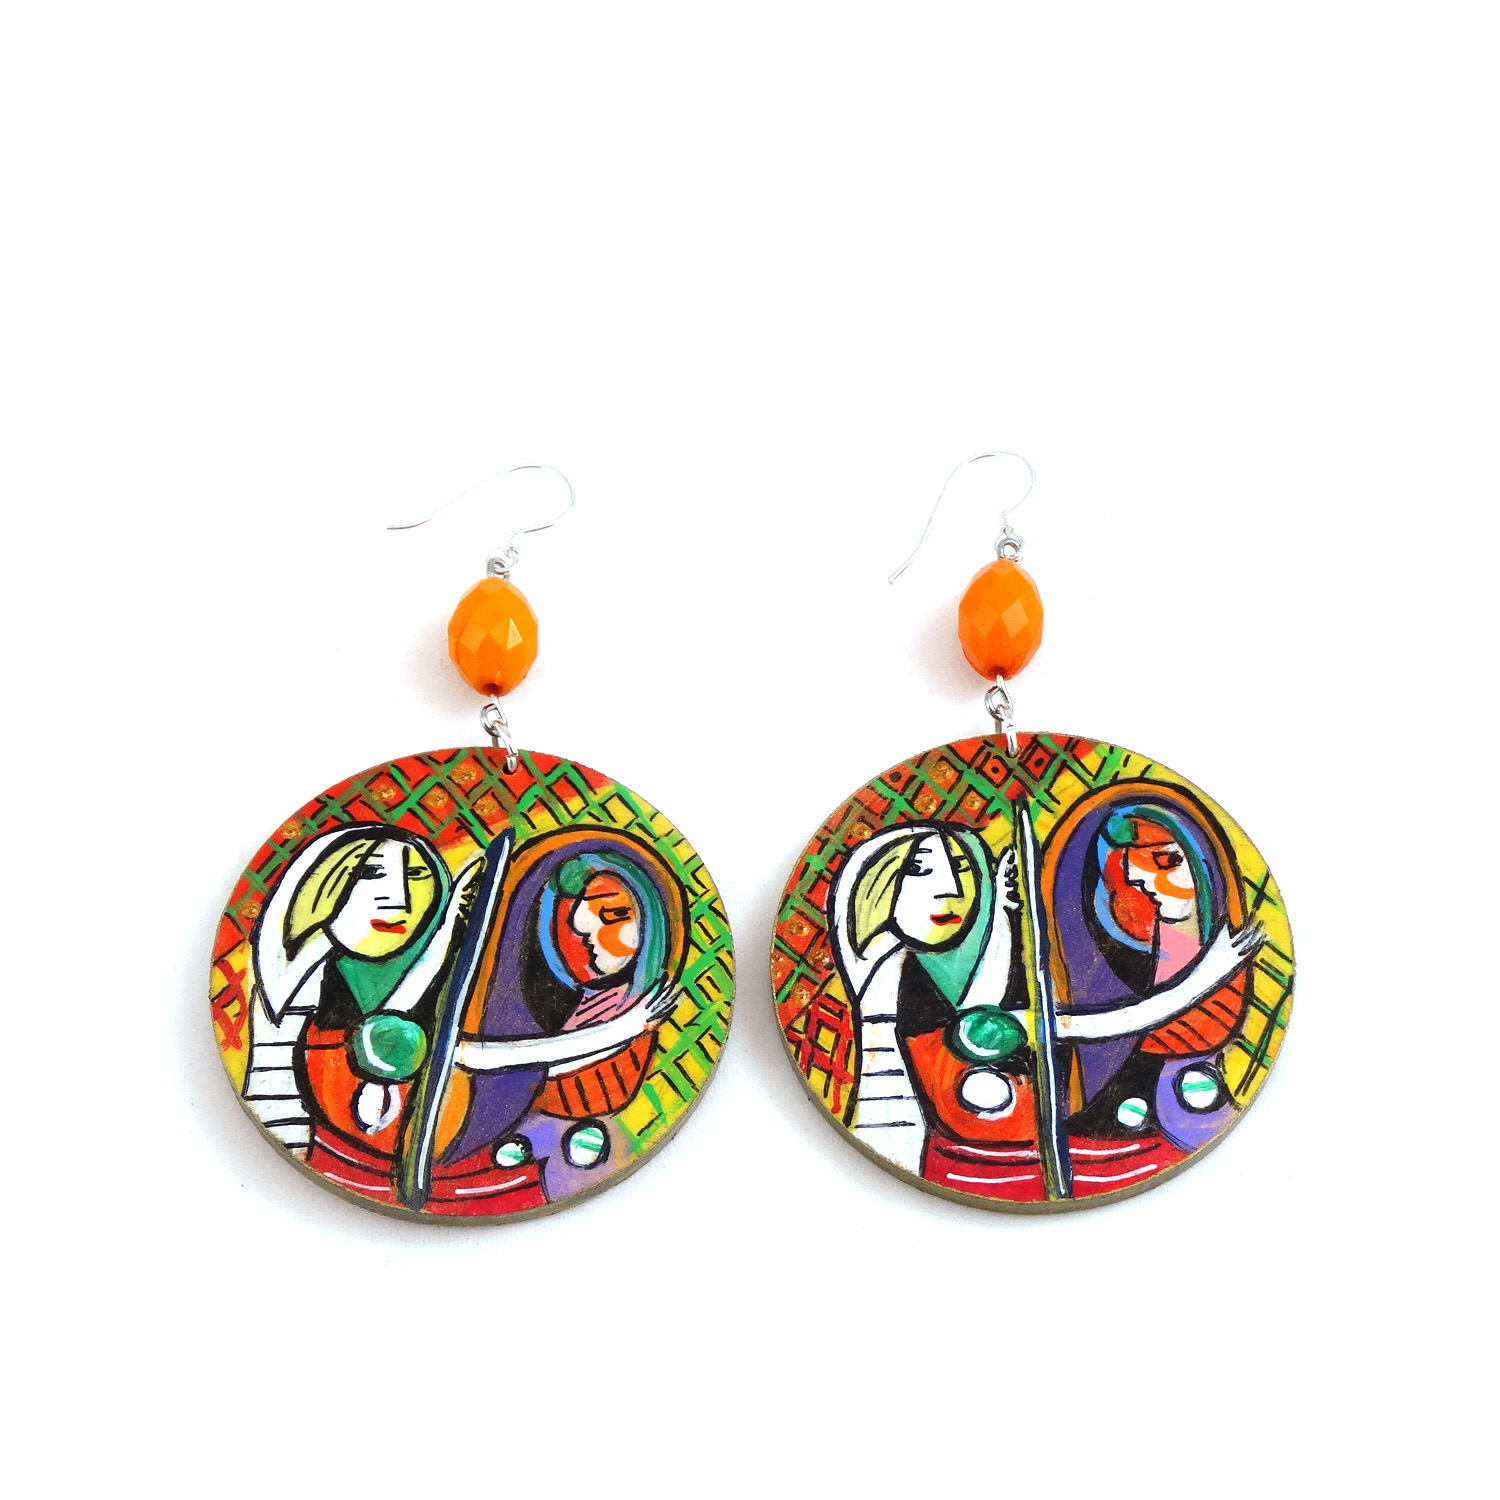 Hand-painted earrings - Girl in the mirror by Picasso